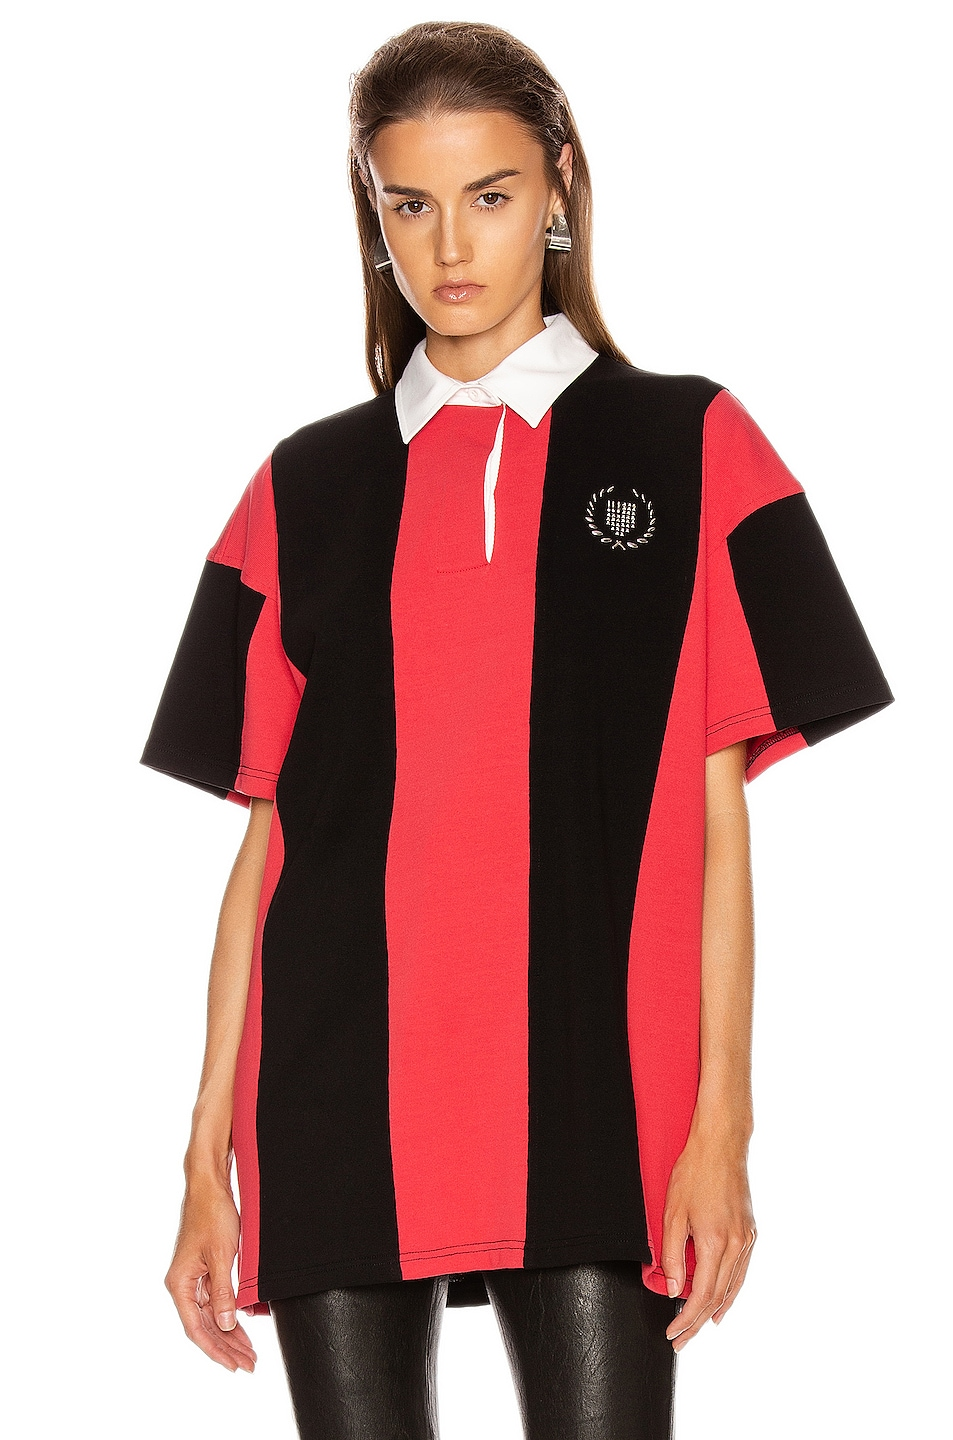 Image 2 of Alexander Wang Short Sleeve Rugby Collared Shirt in Faded Red & Black